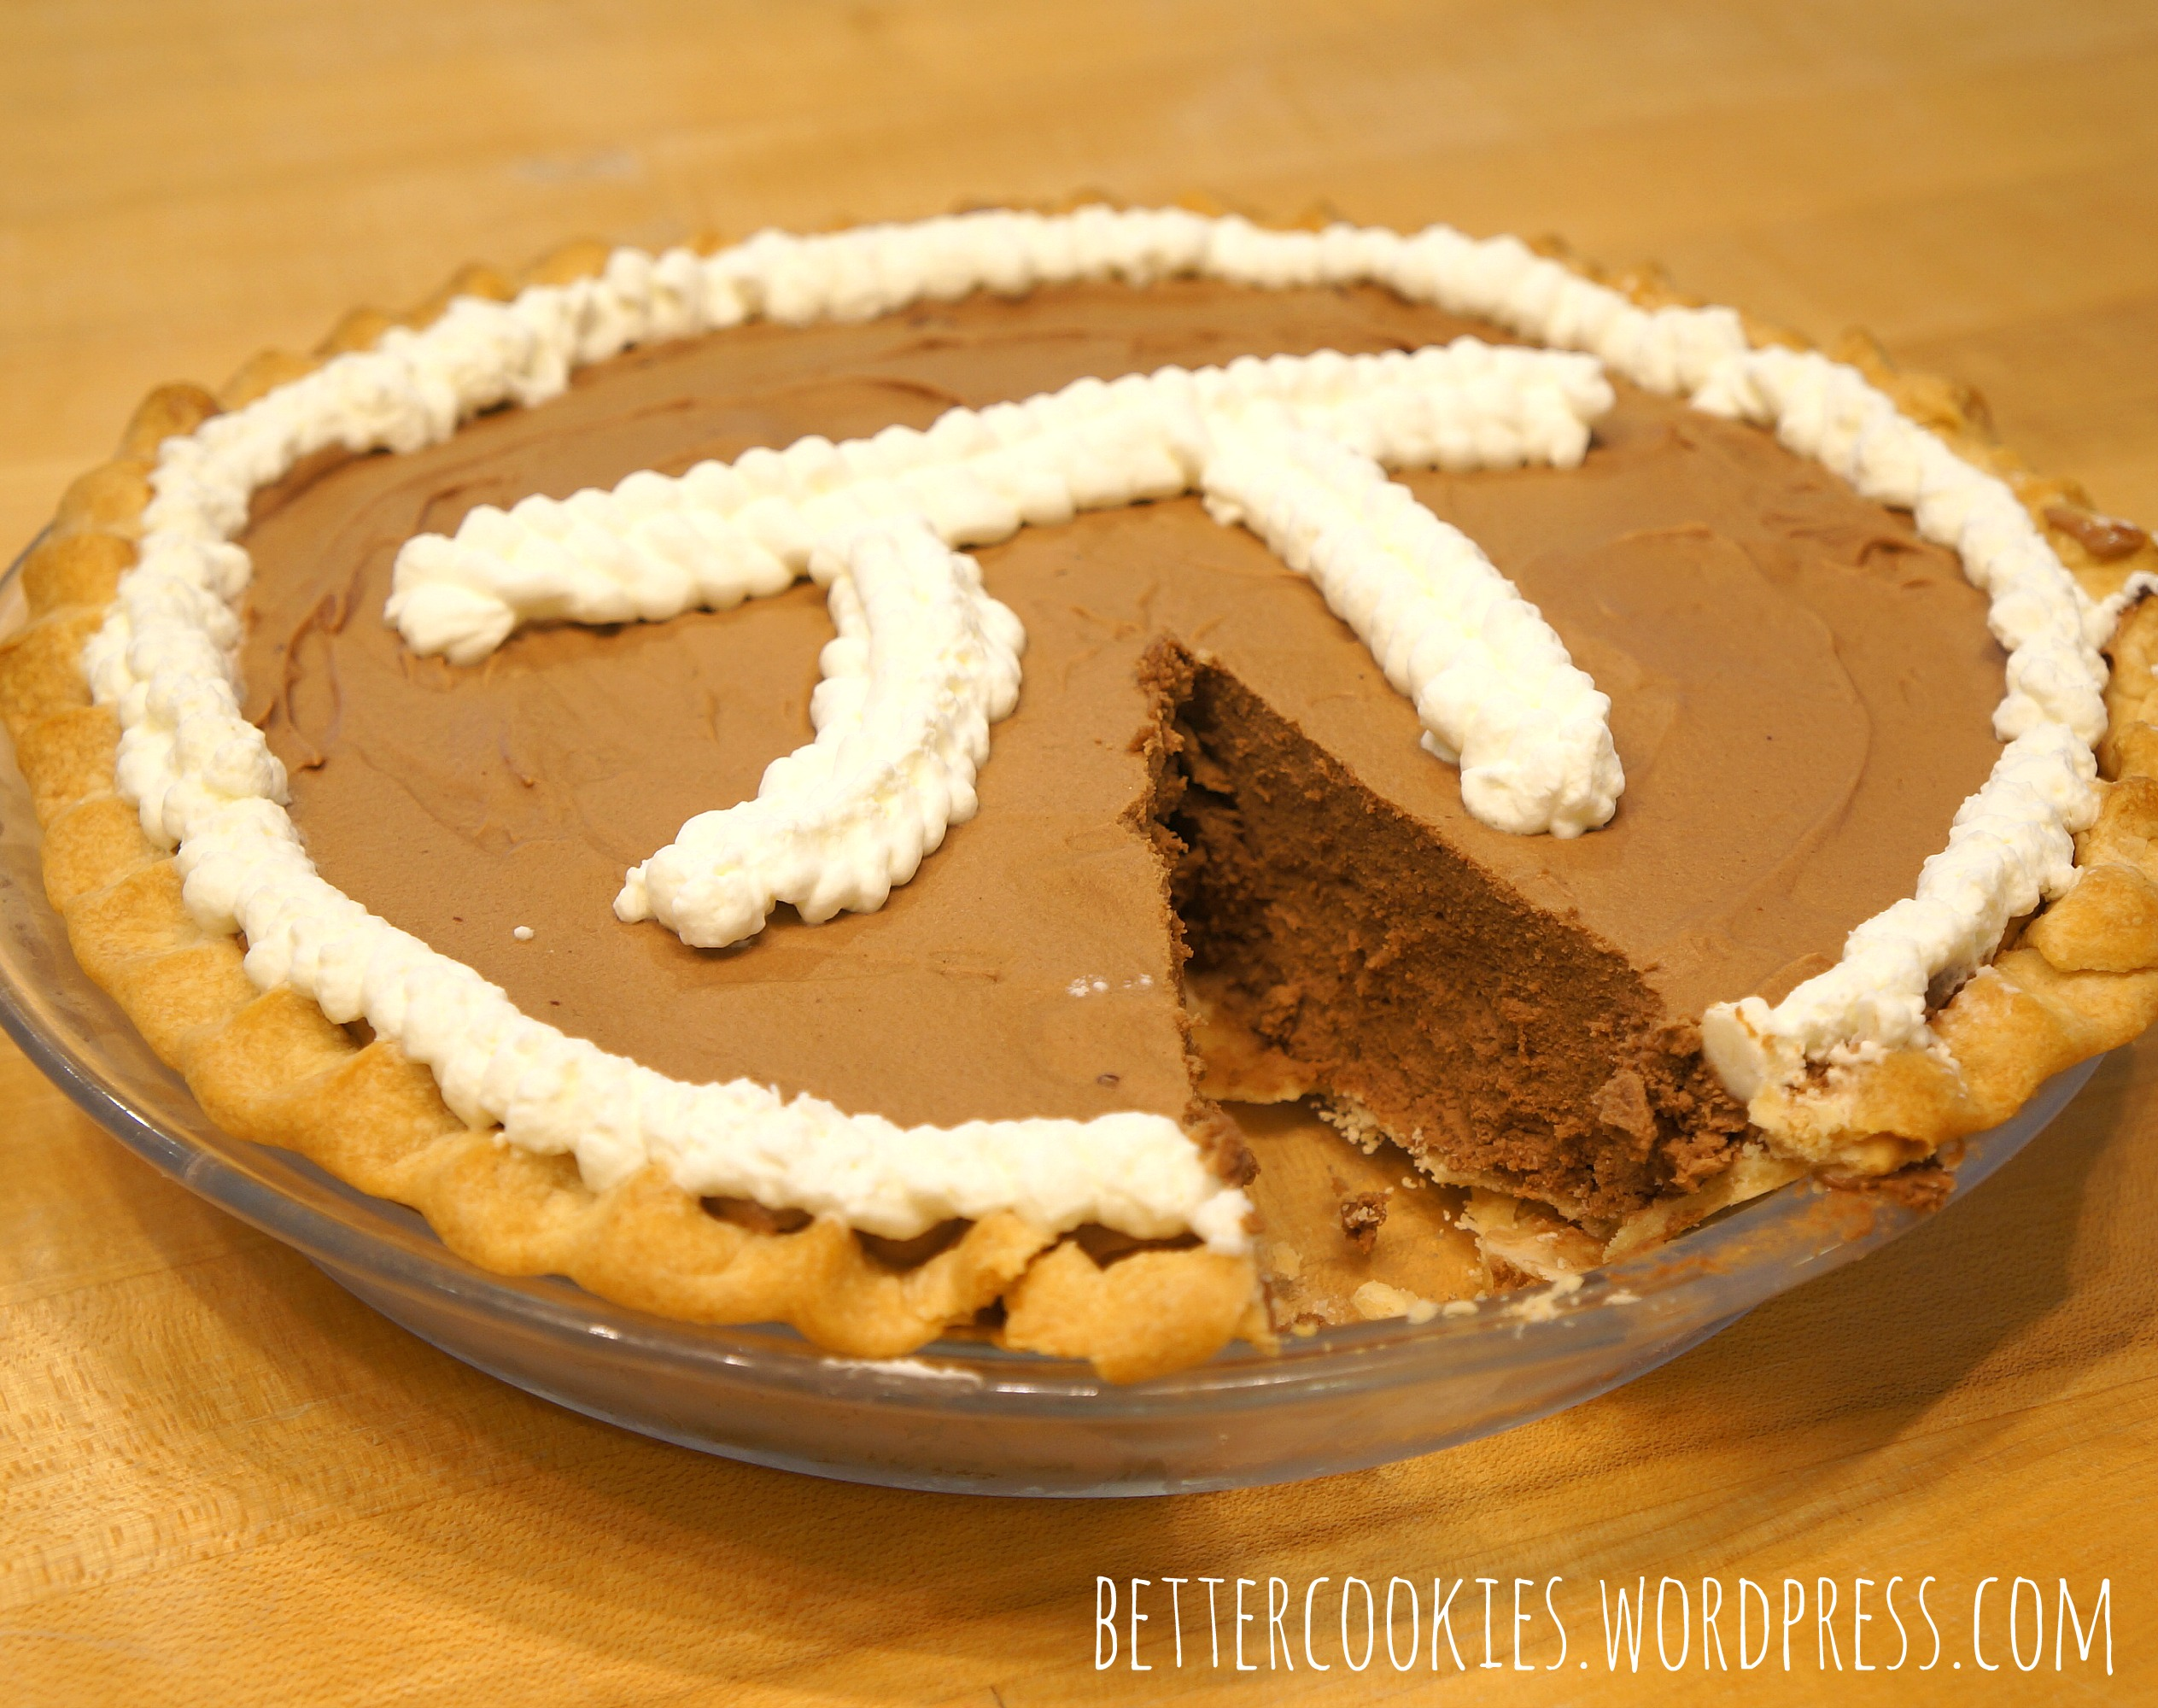 Happy Pi Day! French Silk Chocolate Pie